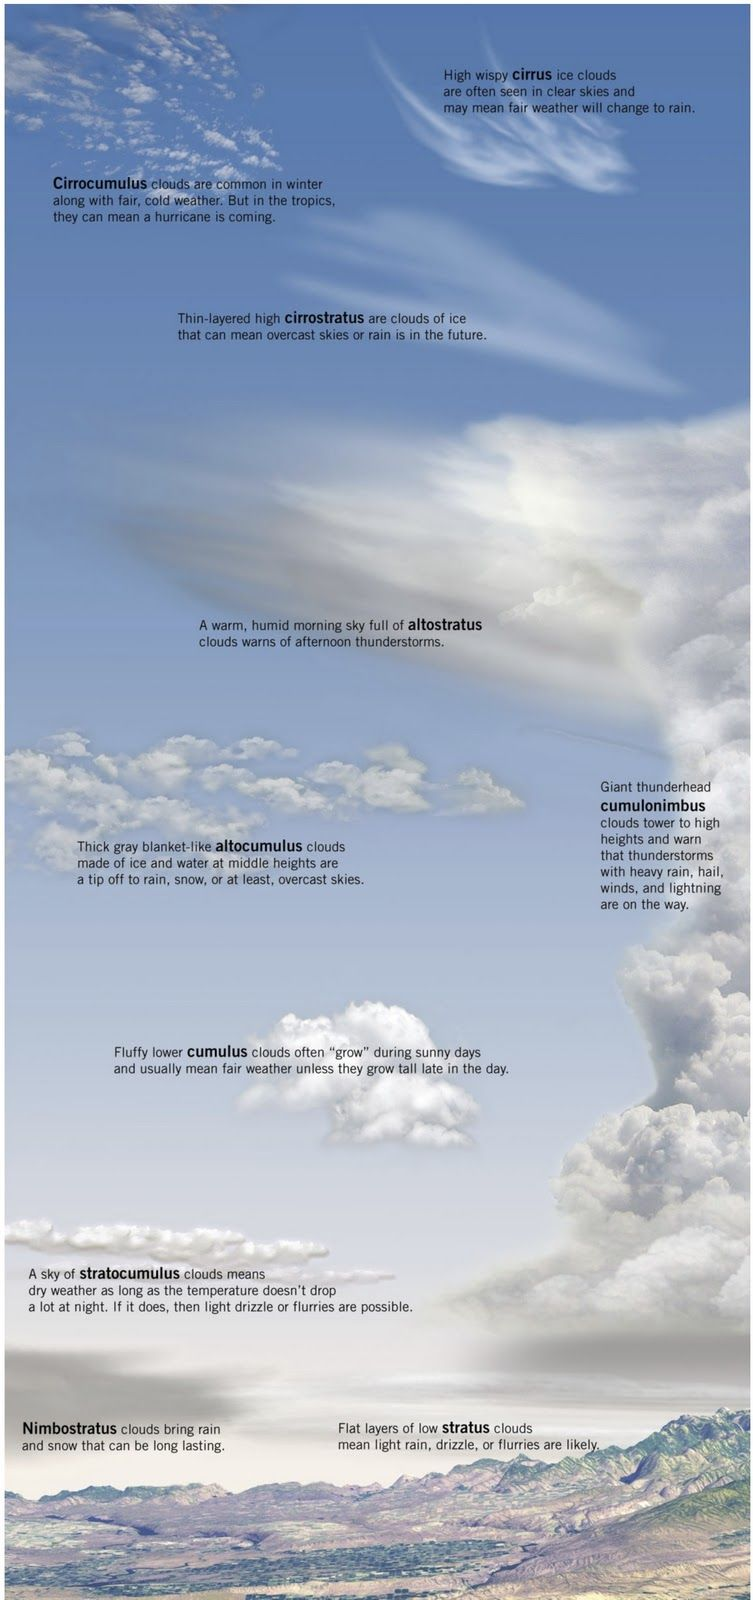 hight resolution of What do different clouds mean for the weather?   Kinds of clouds